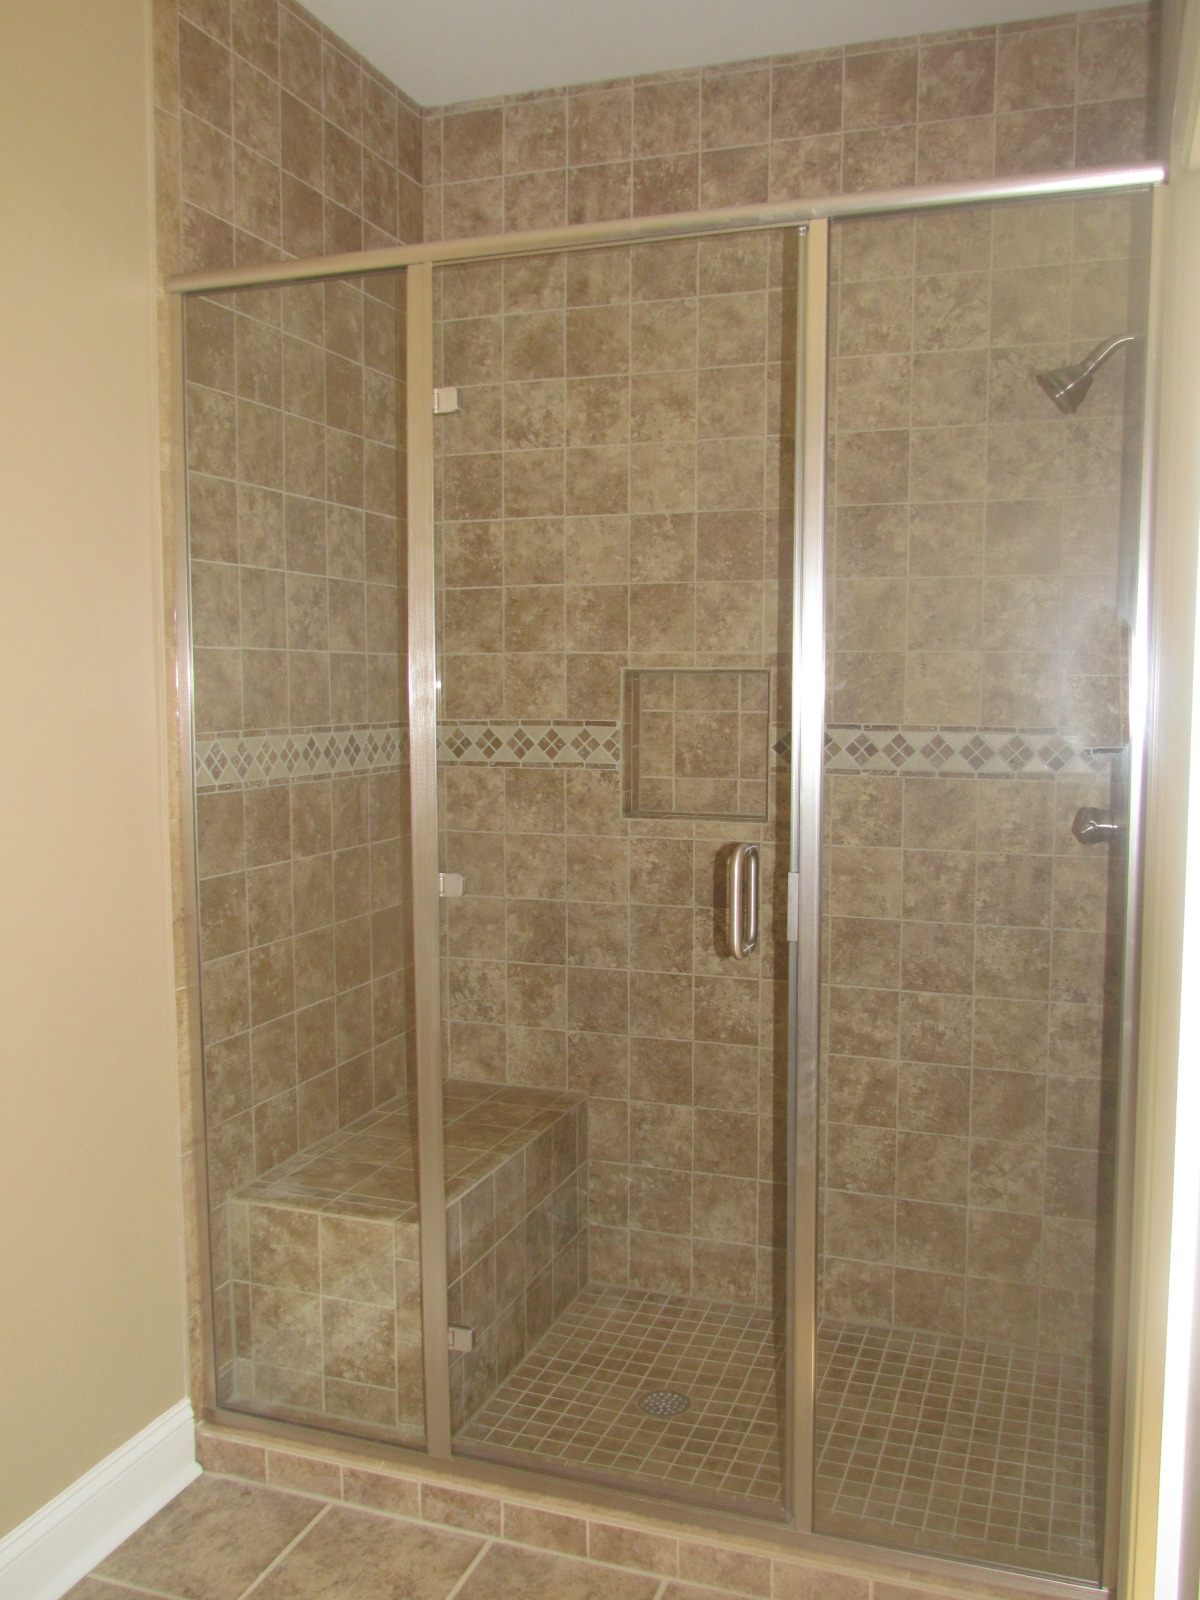 images of tiled showers.  30 Cool Pictures Of Tiled Showers With Glass Doors Esign